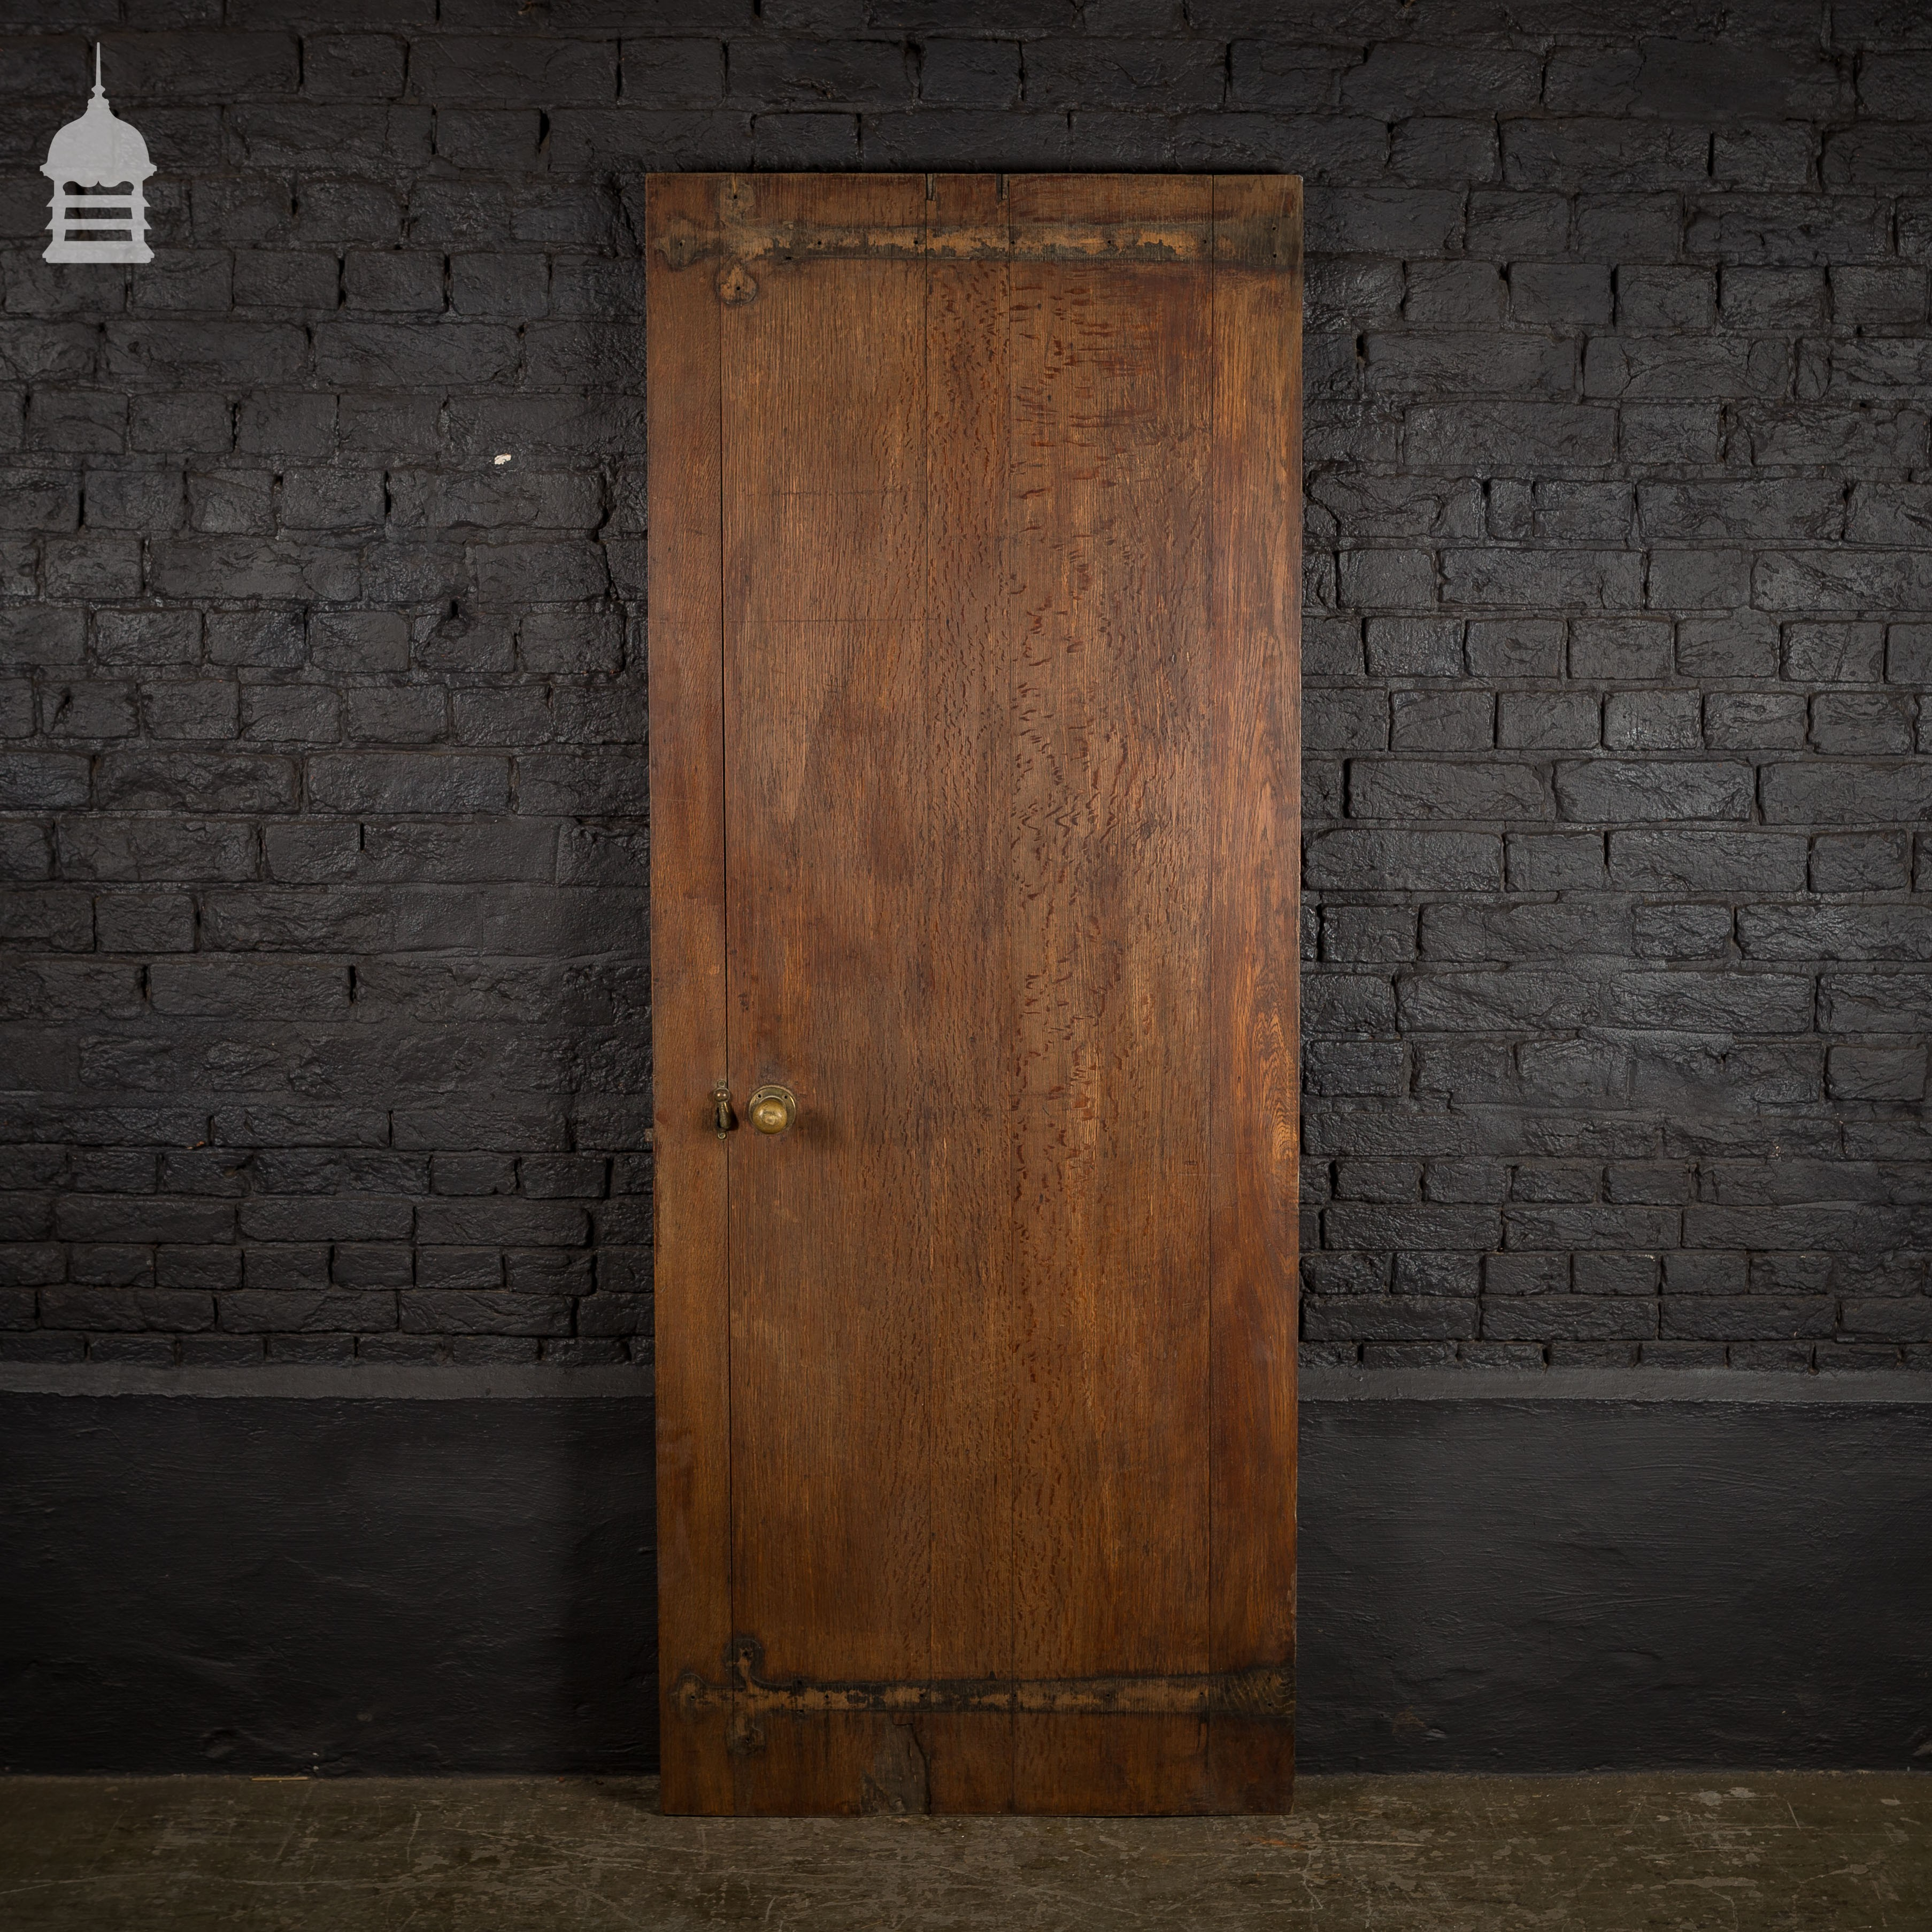 19th C Solid Oak Plank Door with Stop Chamfer Detail & 19th C Solid Oak Plank Door with Stop Chamfer Detail - Internal ...